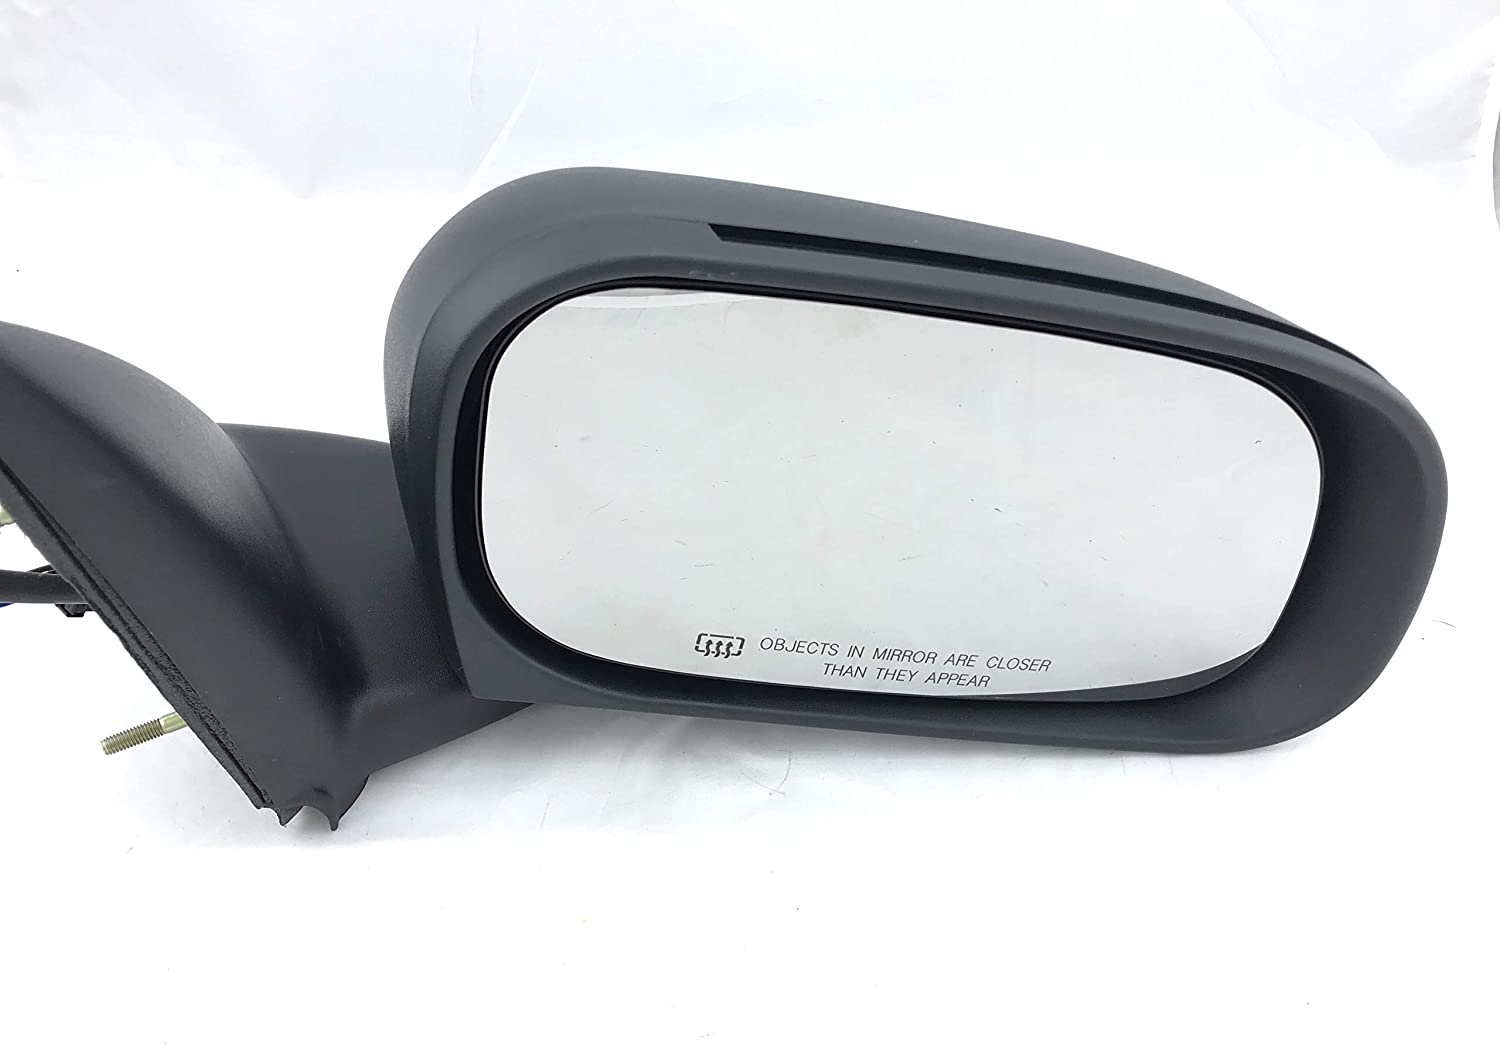 TEXTURED PWR HT MIR RH | Parts Link #: CH1321237 OE:55077624AD Passenger Side Right Rear View Mirror Replacement for Dodge DAKOTA P//U 05-07 6x9